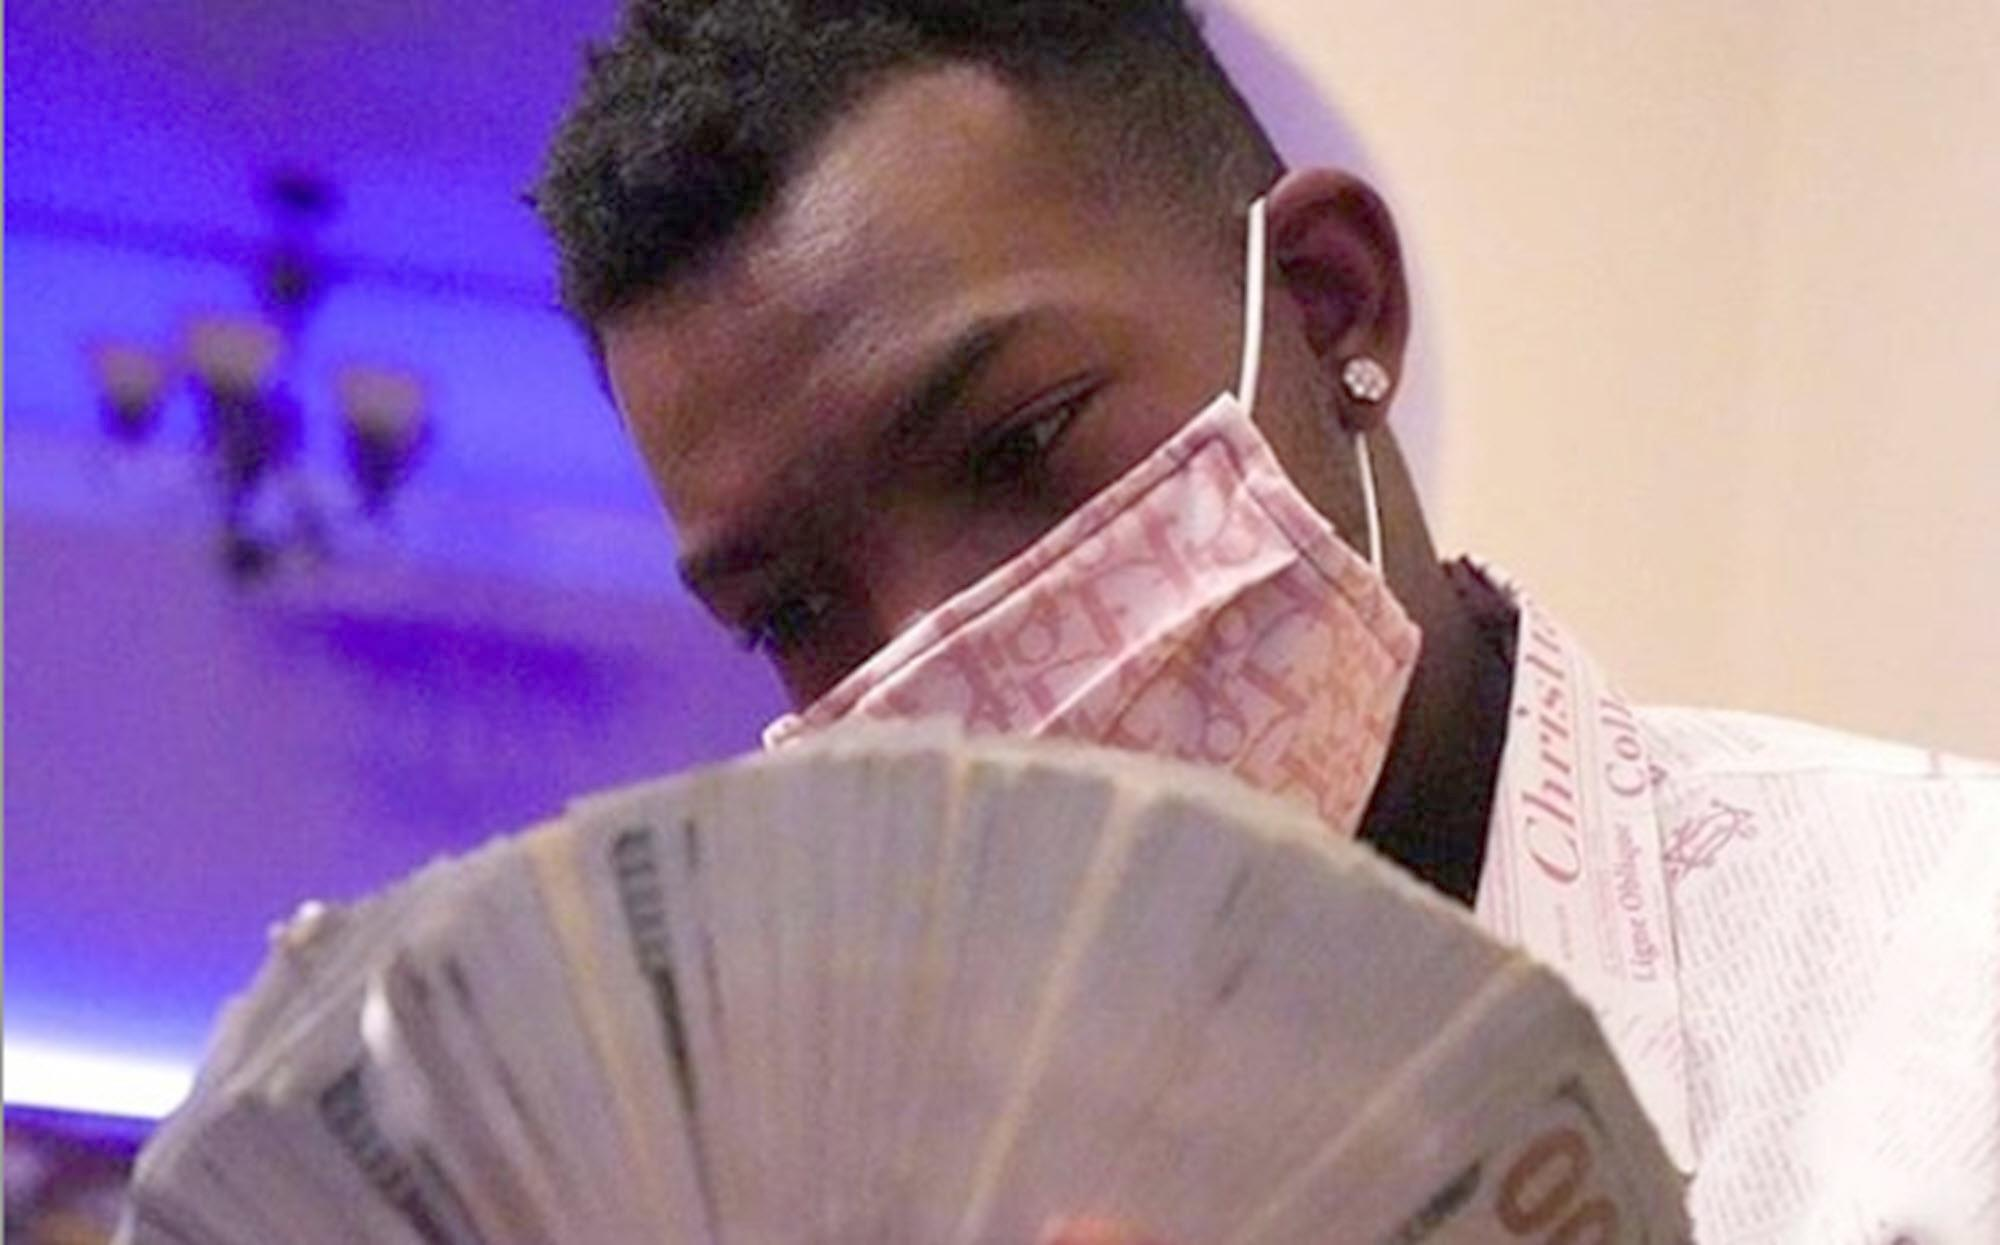 Rapper Nuke Bizzle arrested for unemployment fraud after releasing song about it